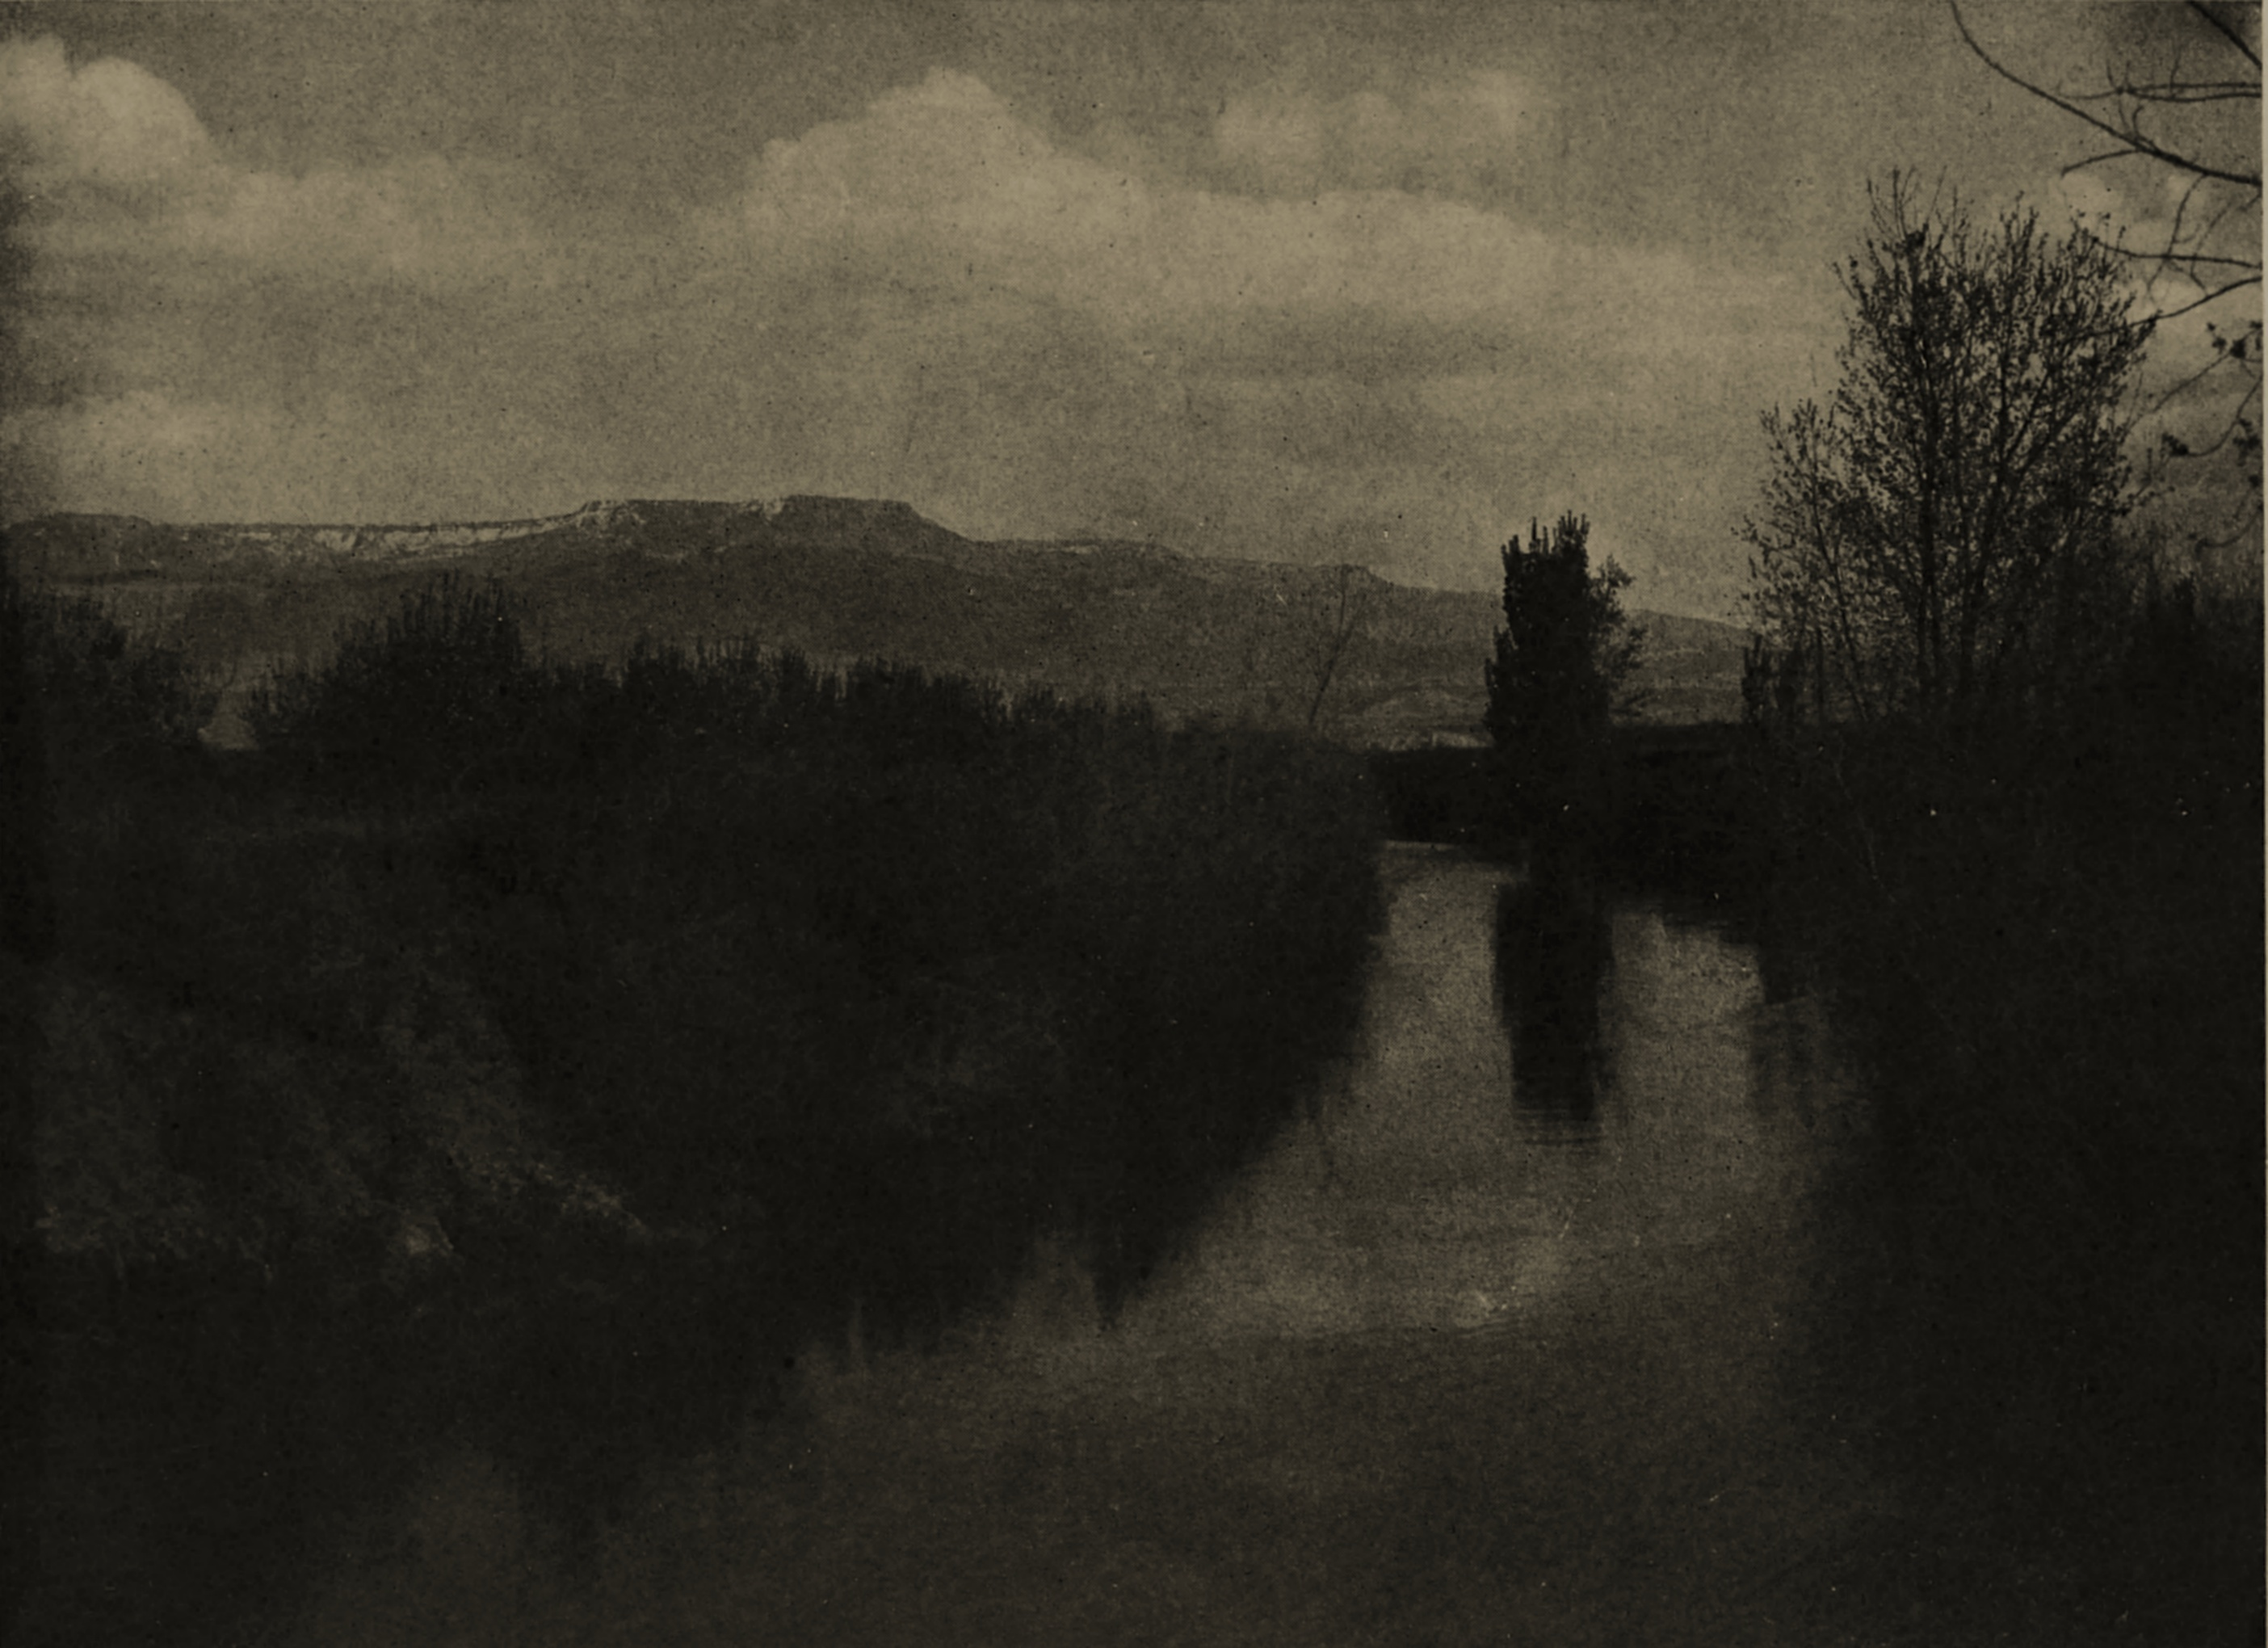 An Irrigating Canal by George L. Beam about 1908